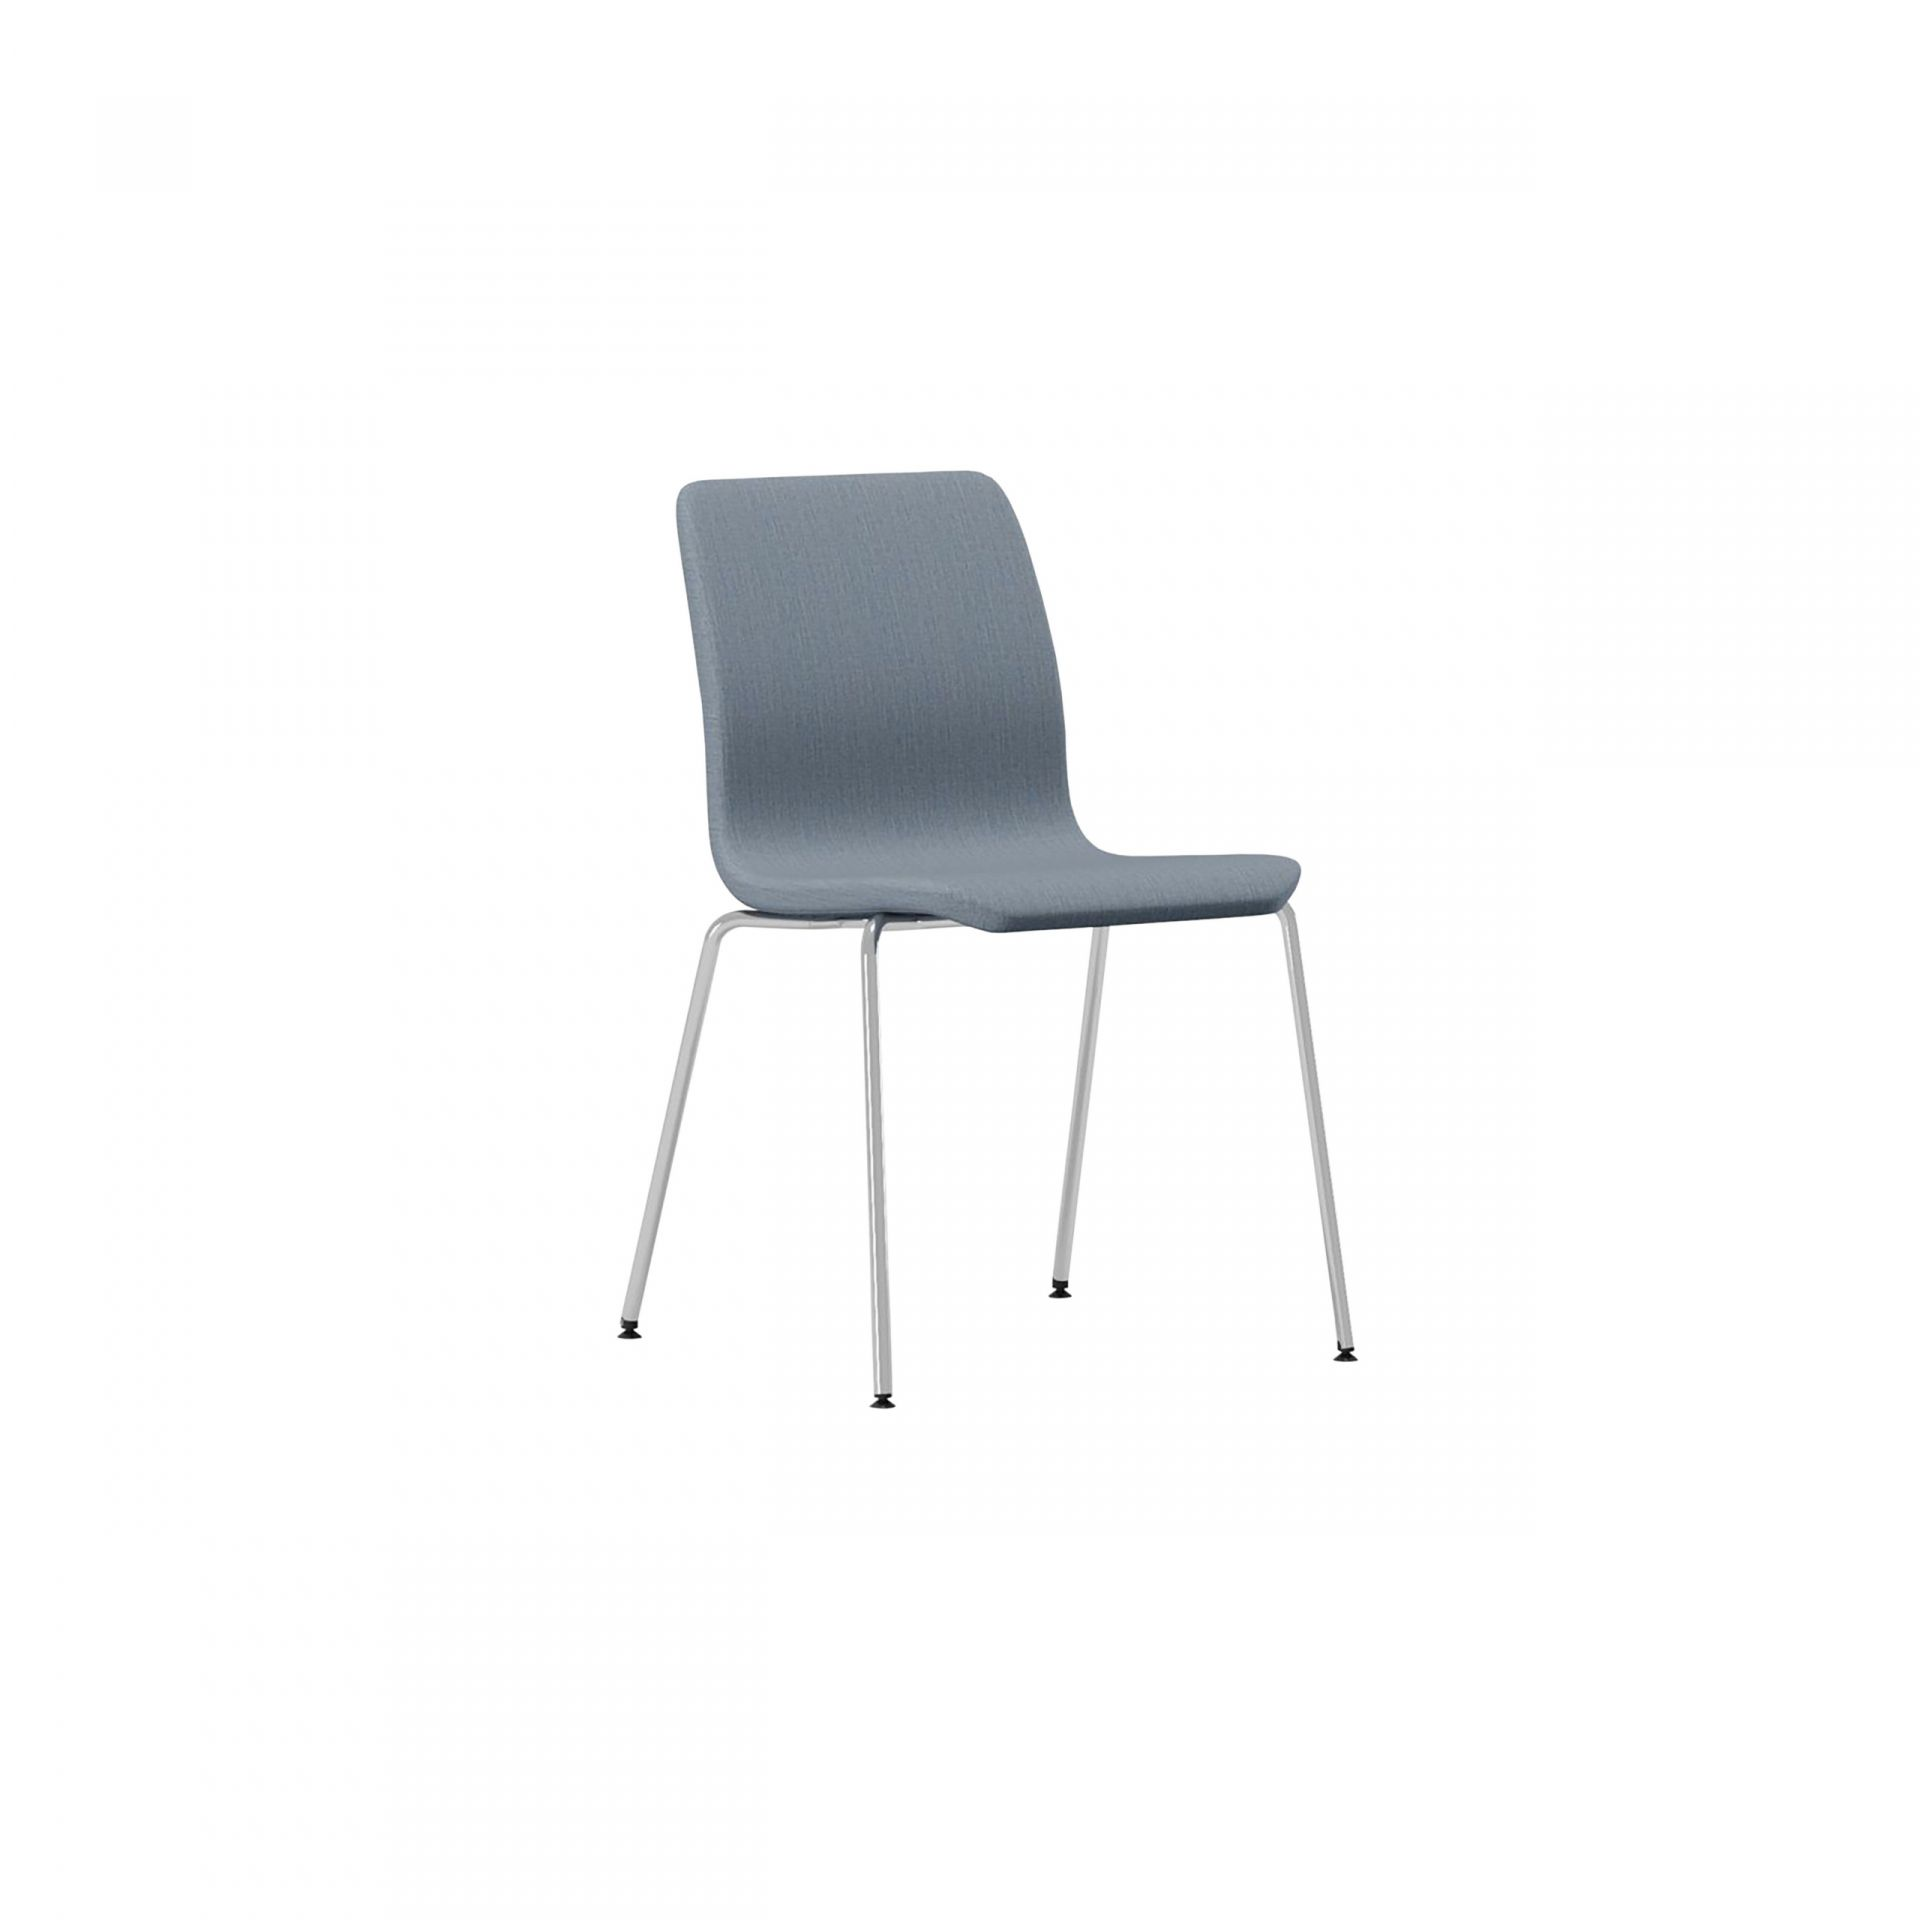 Nova Chair with metal legs product image 1